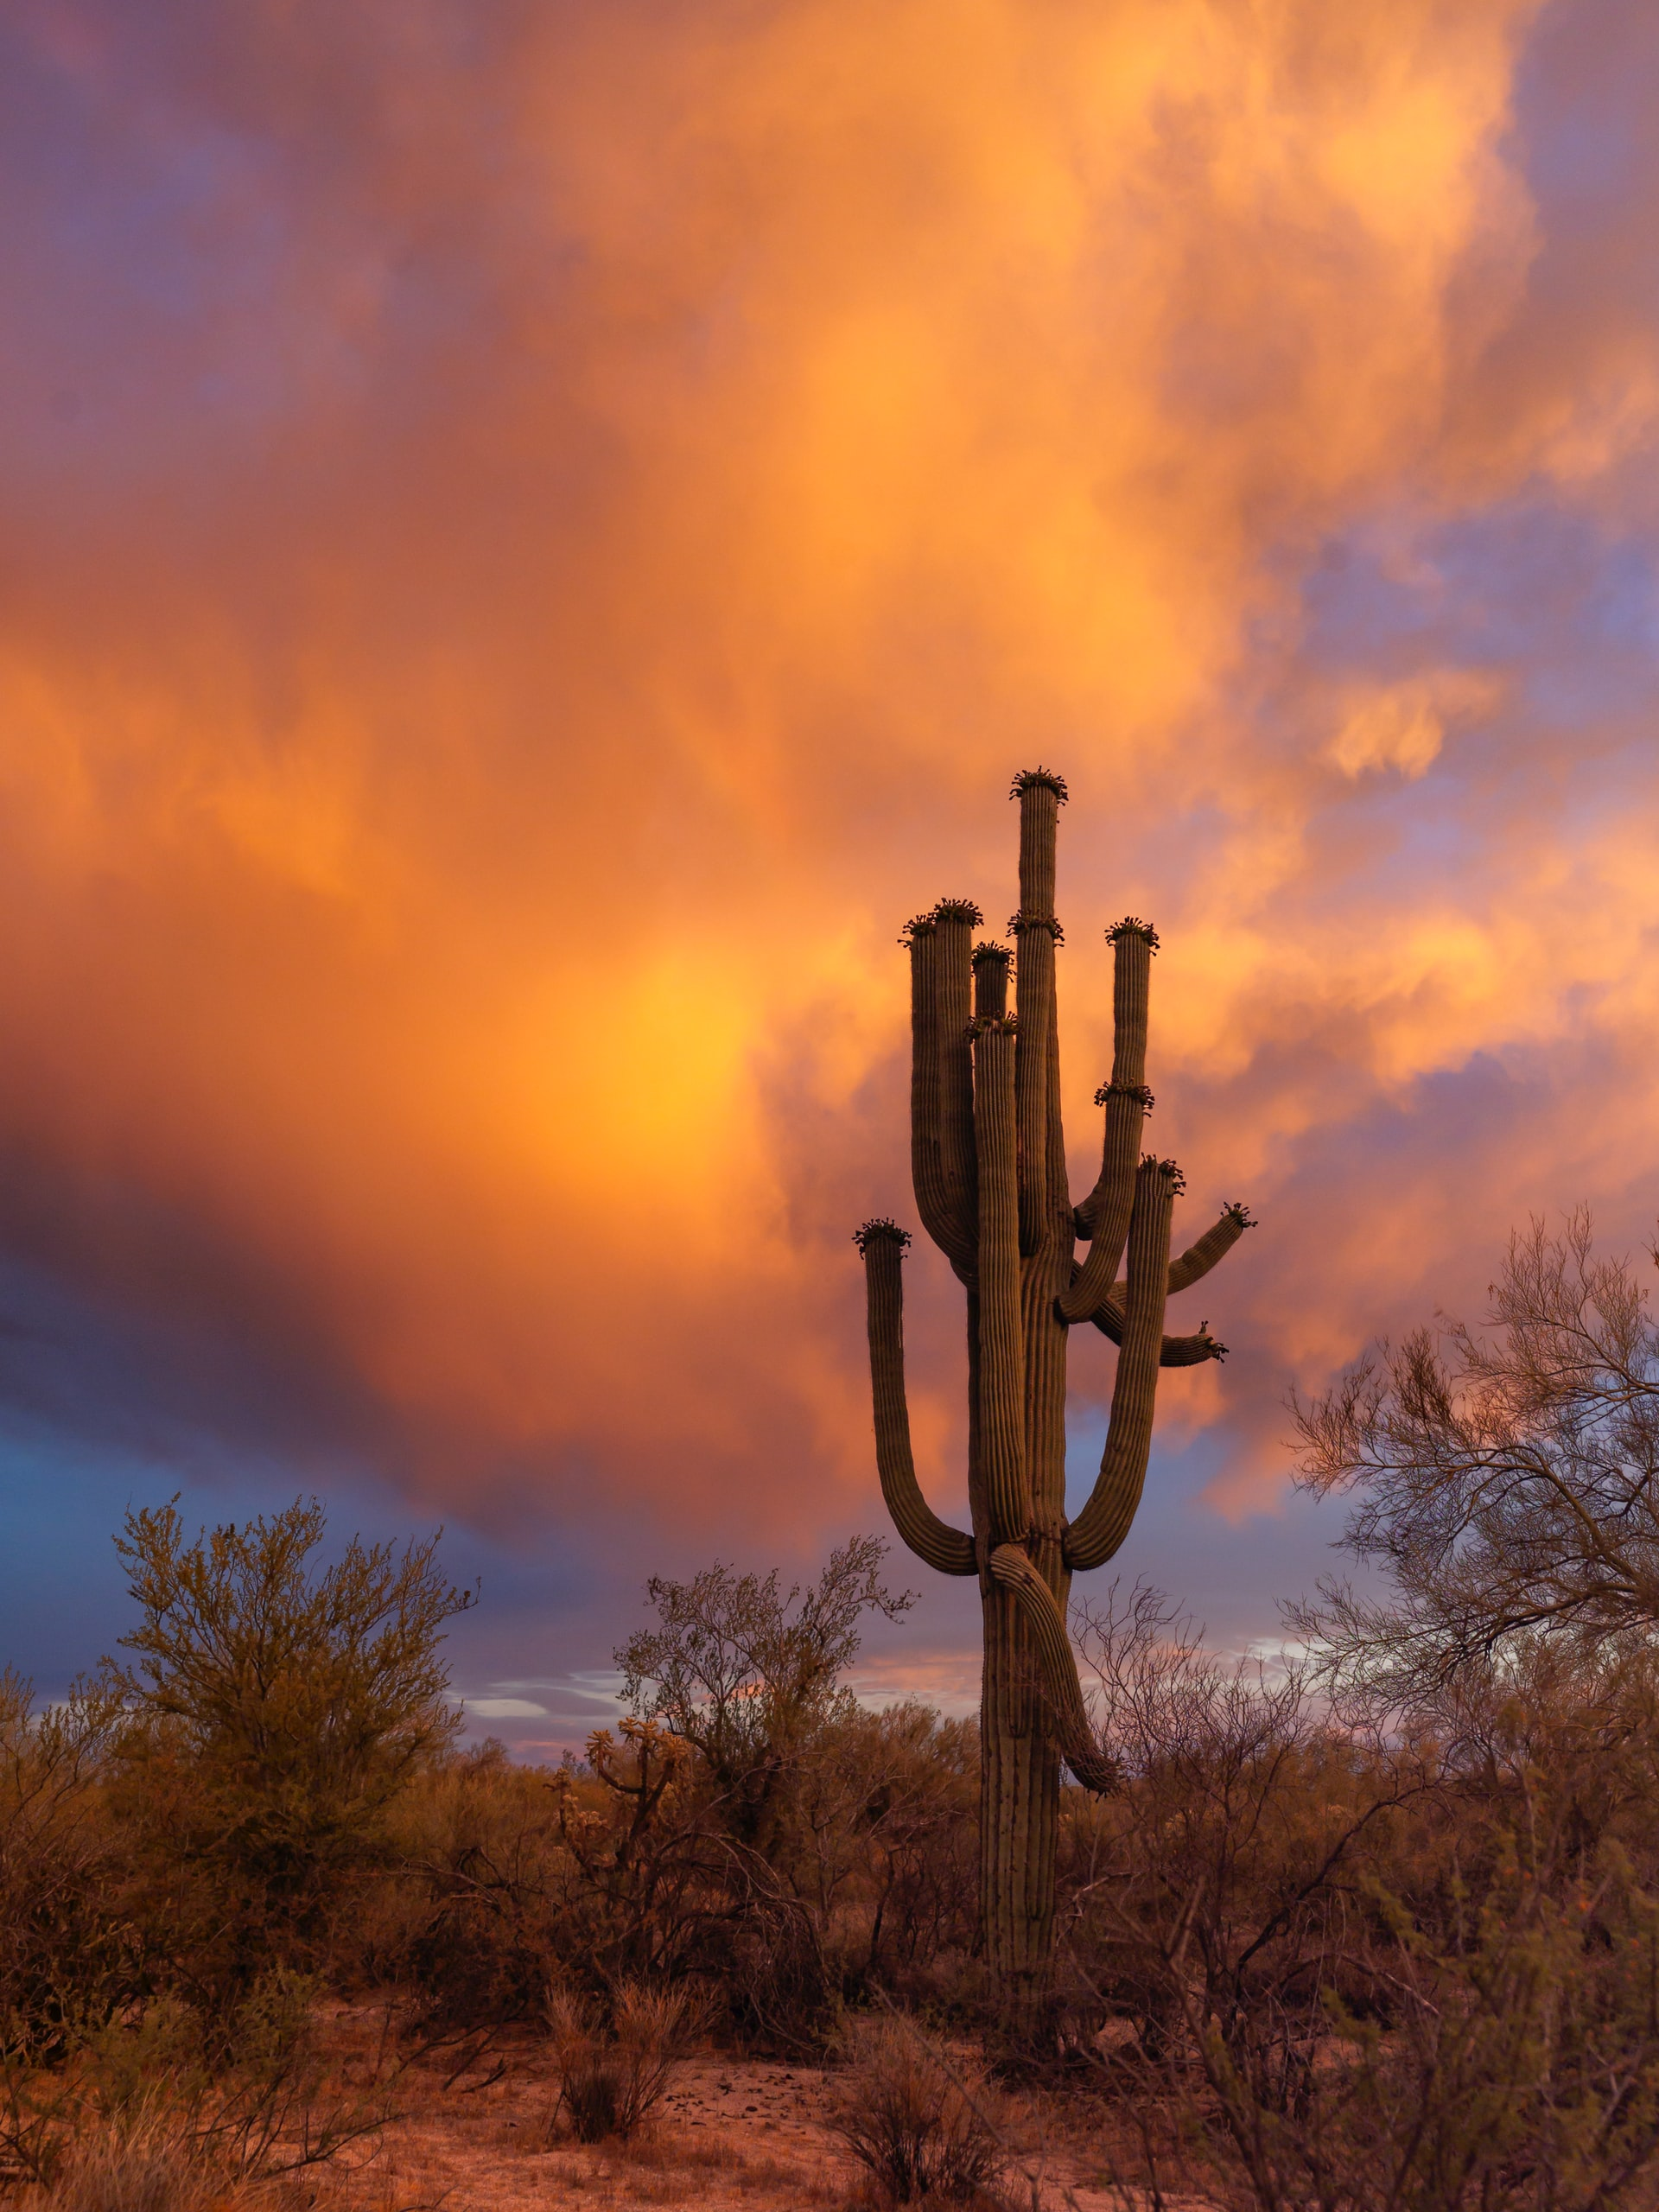 Organ Pipe cactus at dusk